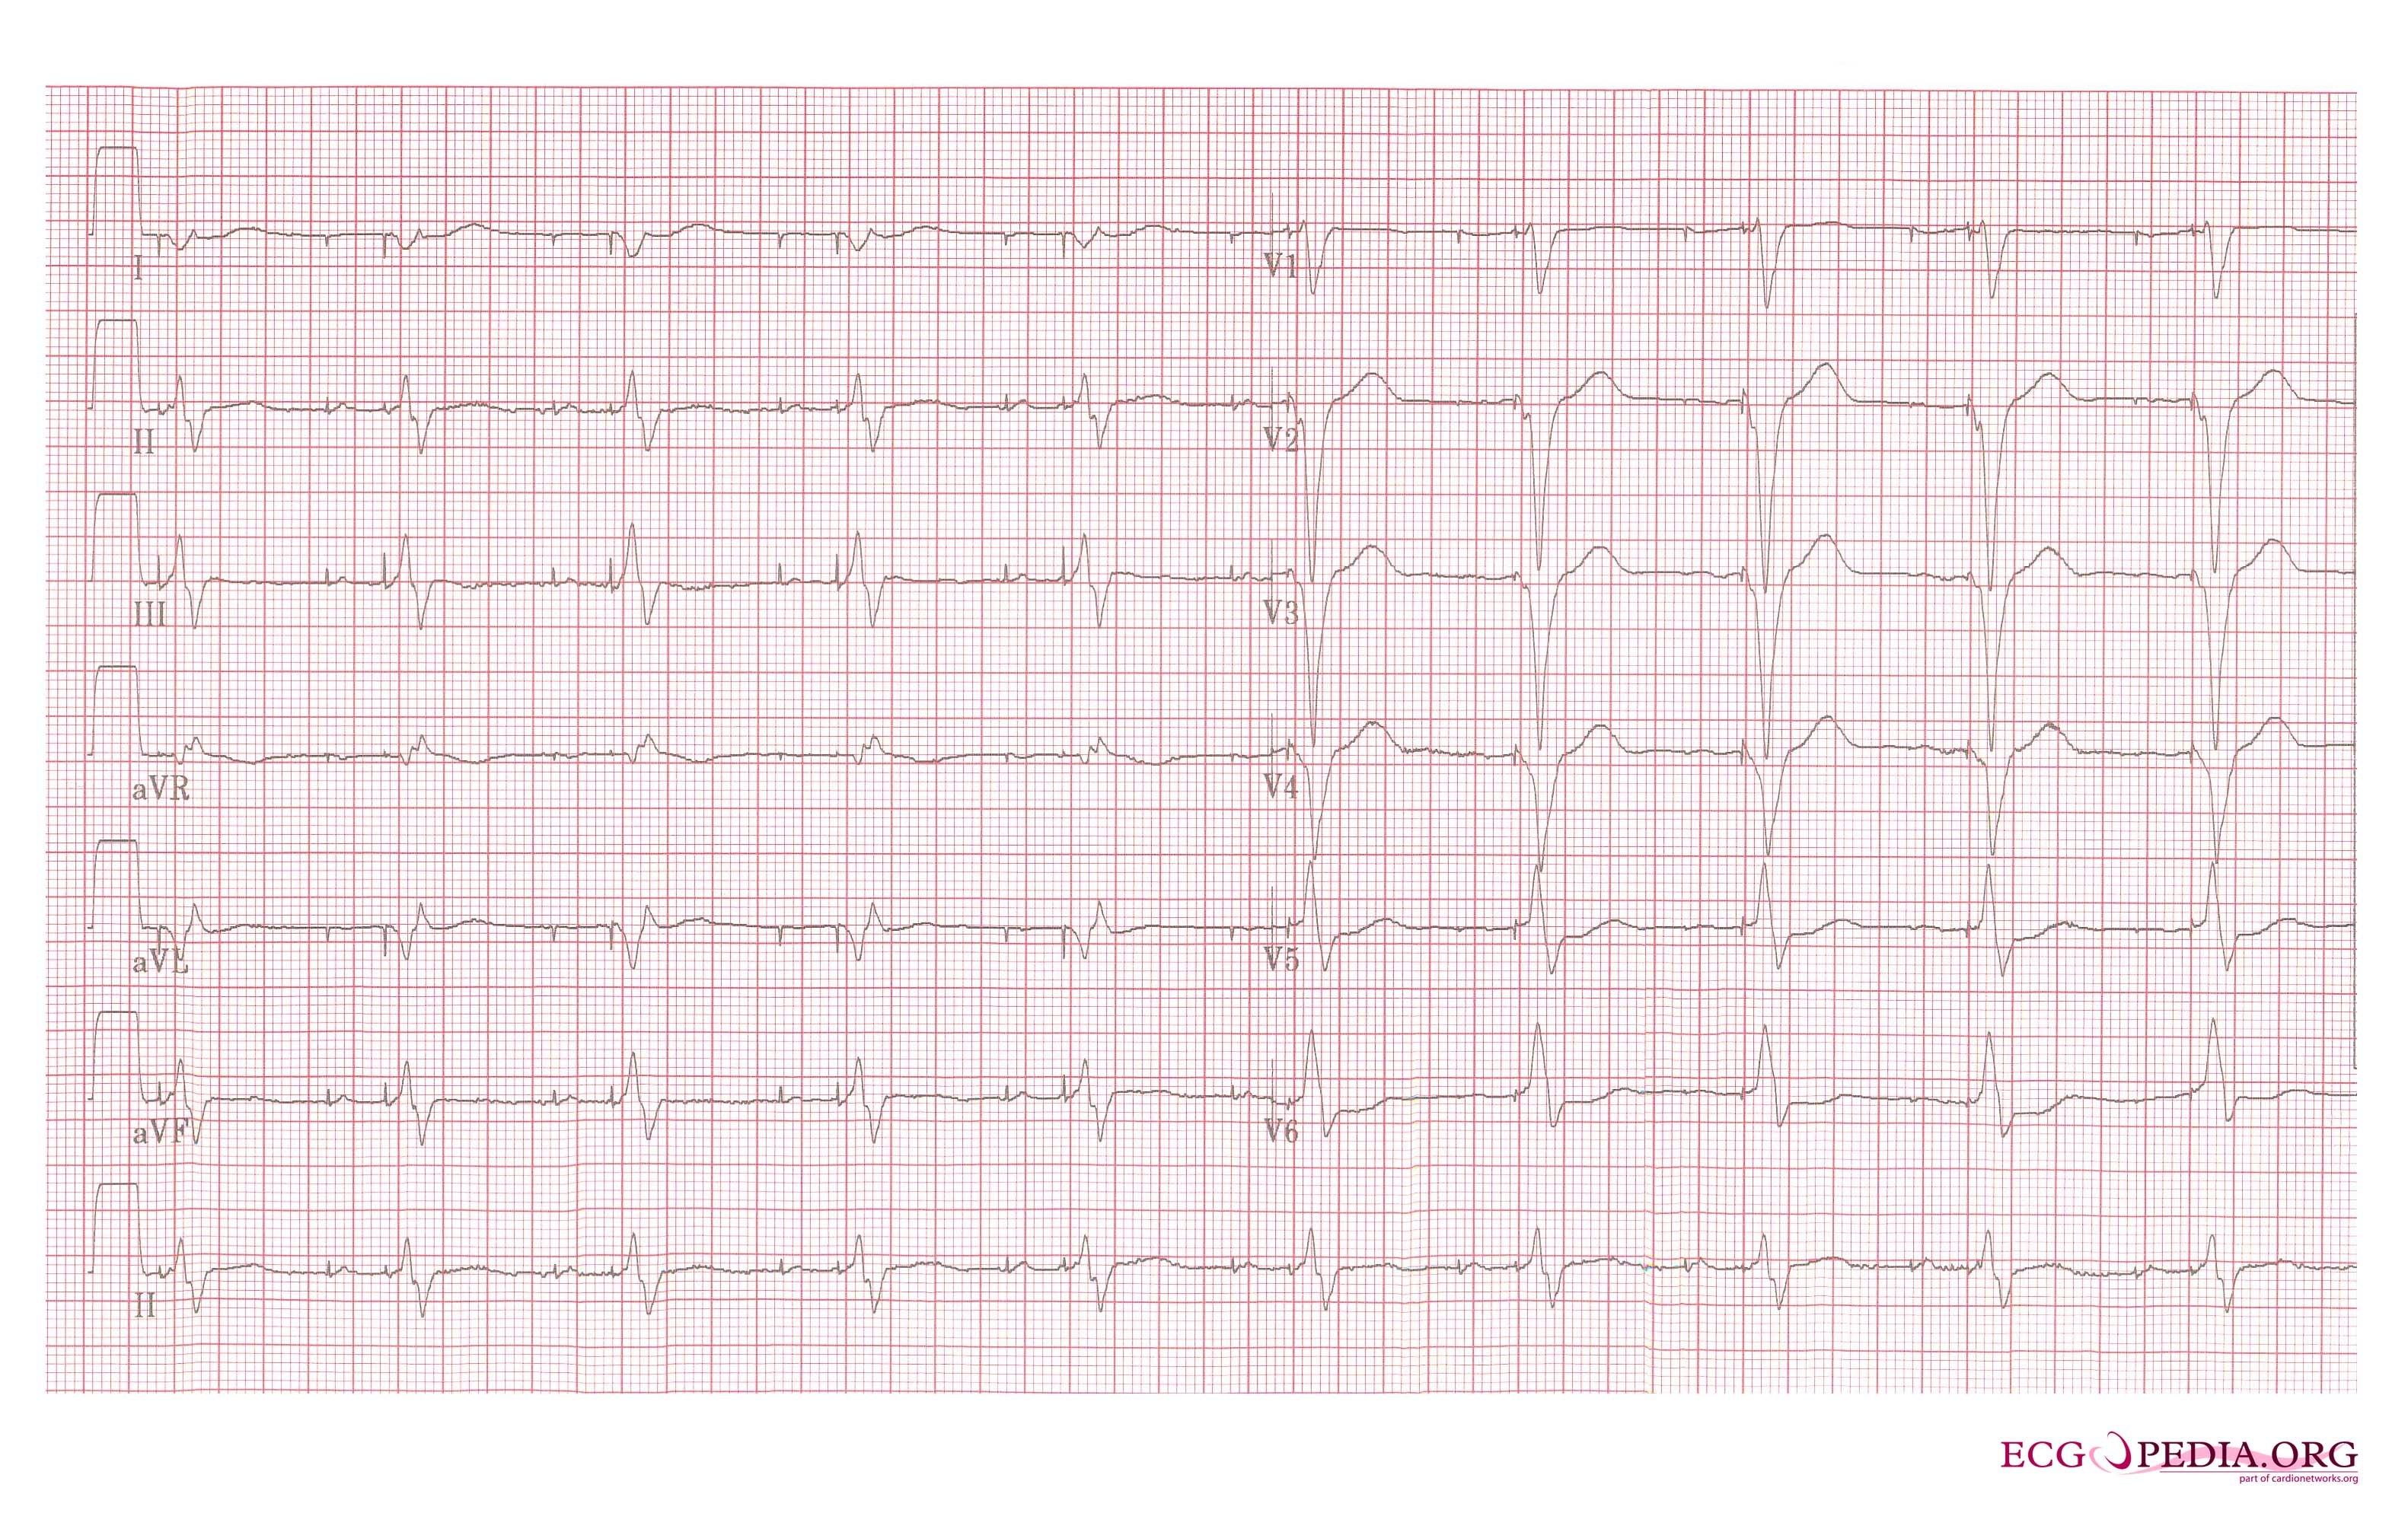 12 Lead Ecg Circuit Wiring Diagram For Professional Simulator The Ekg In A Patient With Pacemaker Wikidoc Placement